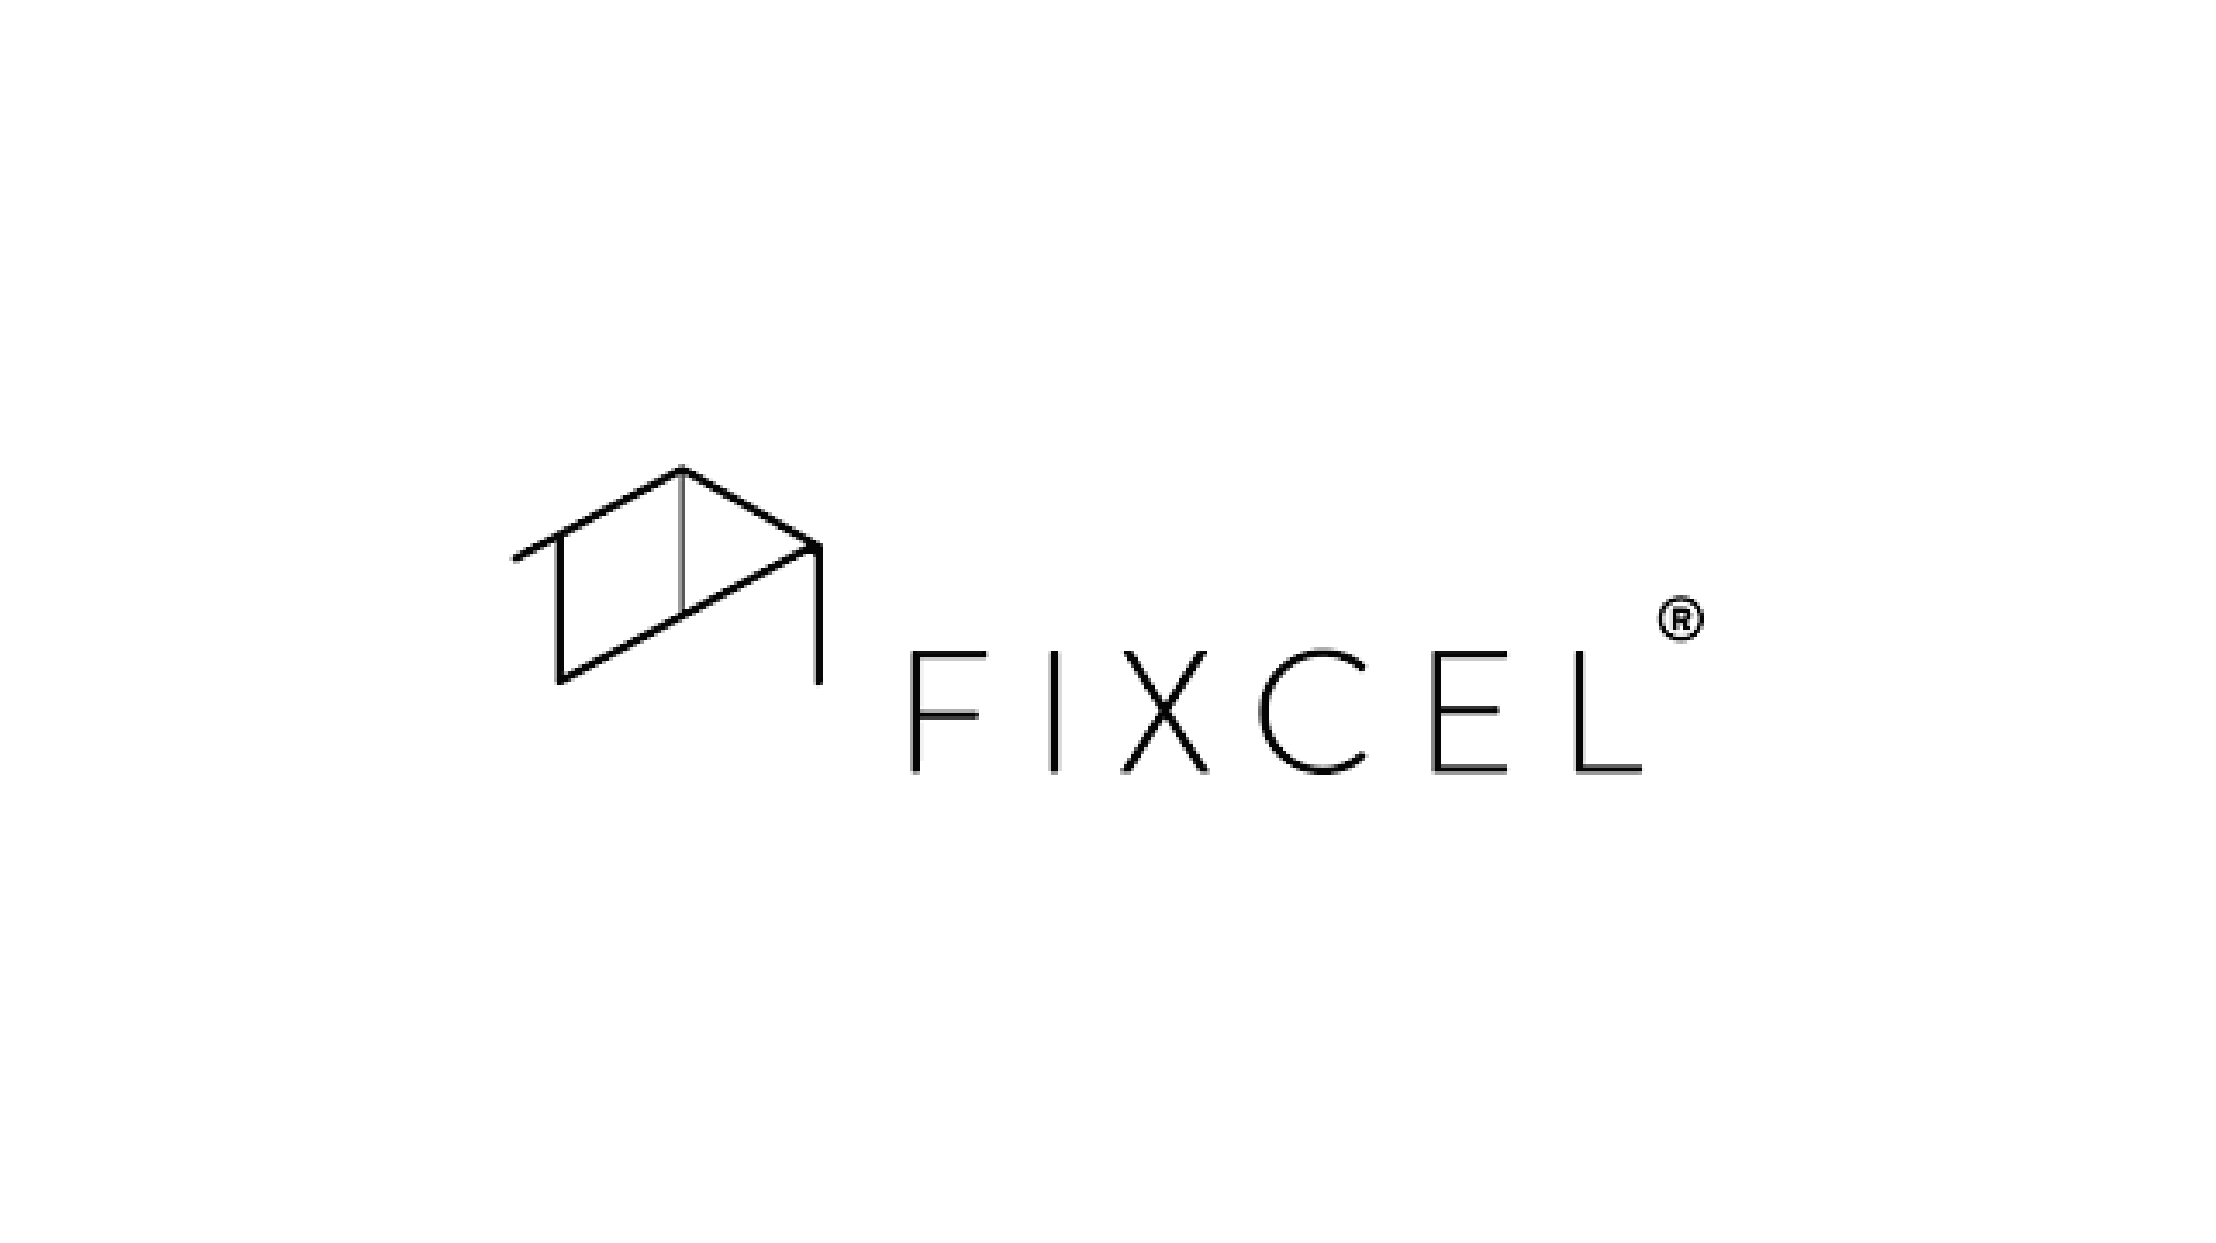 Fixcel Group